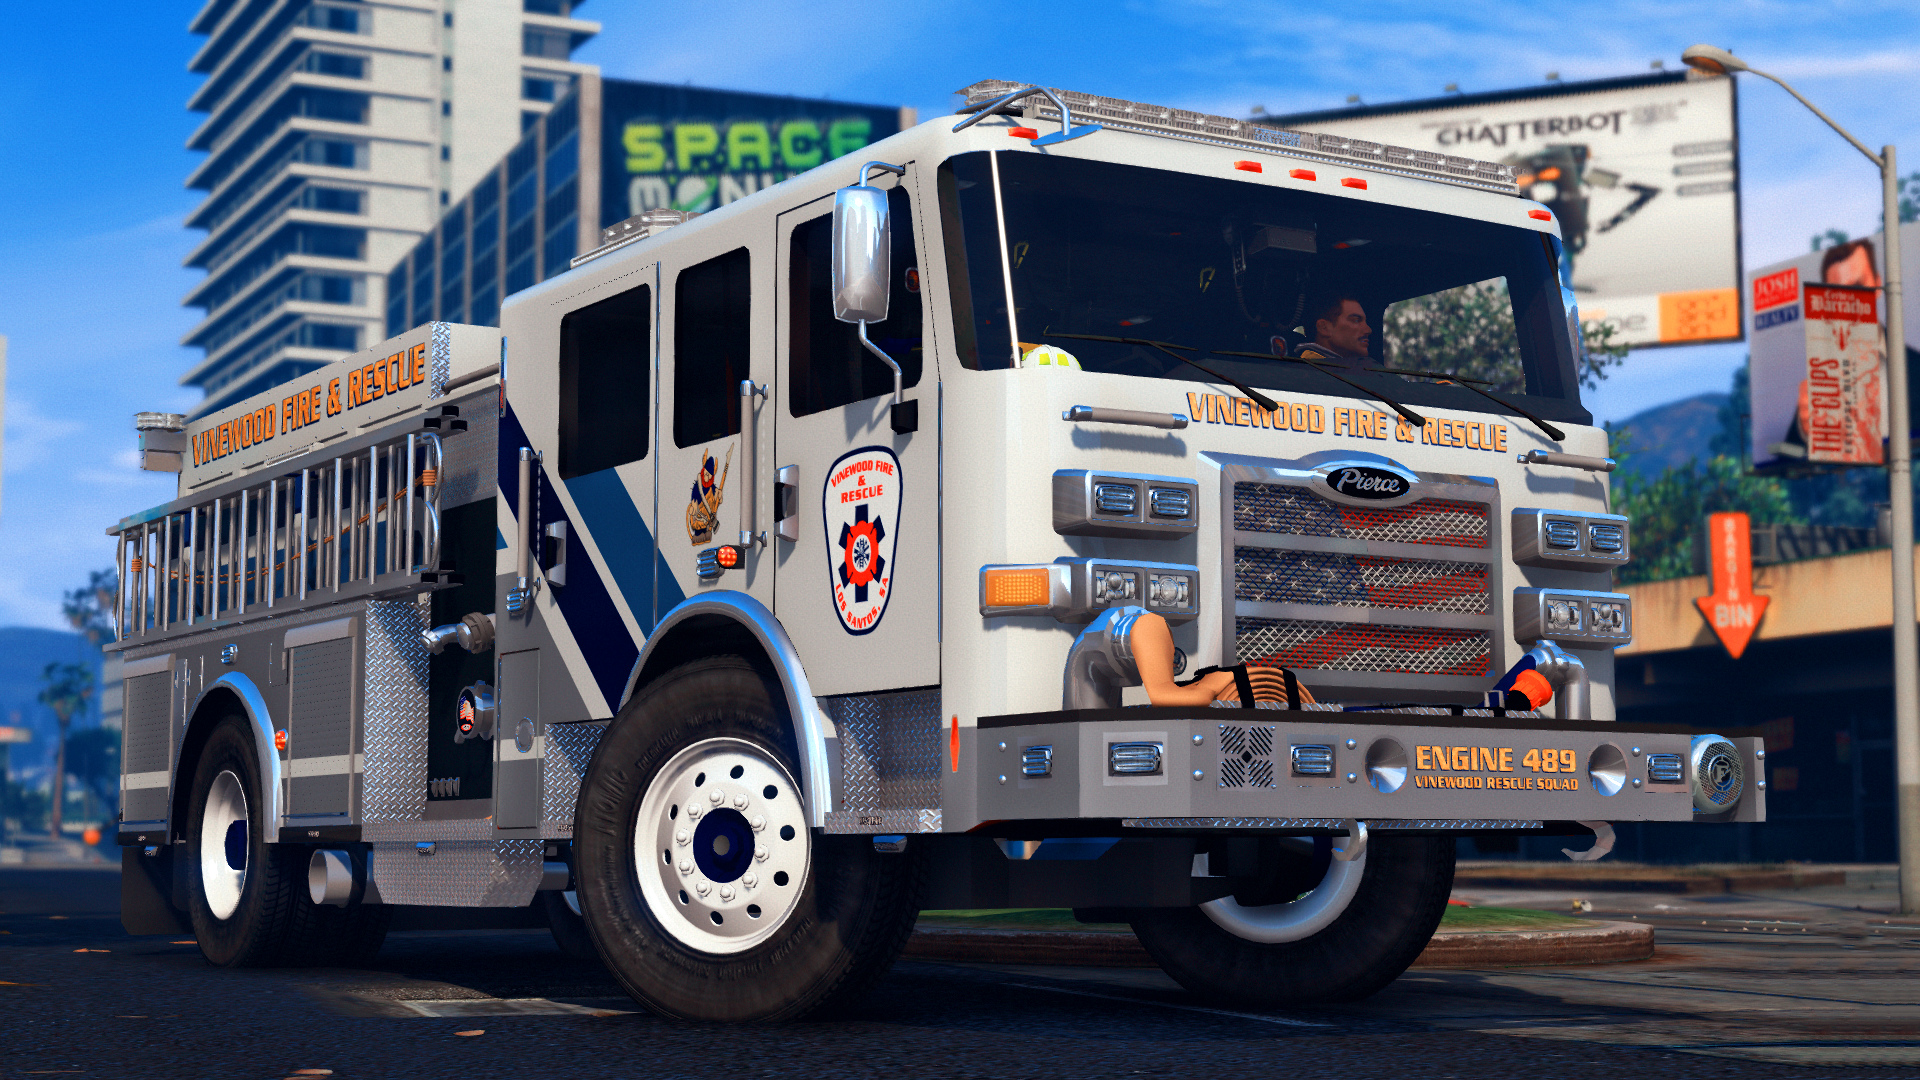 Based on West End Fire Rescue Company